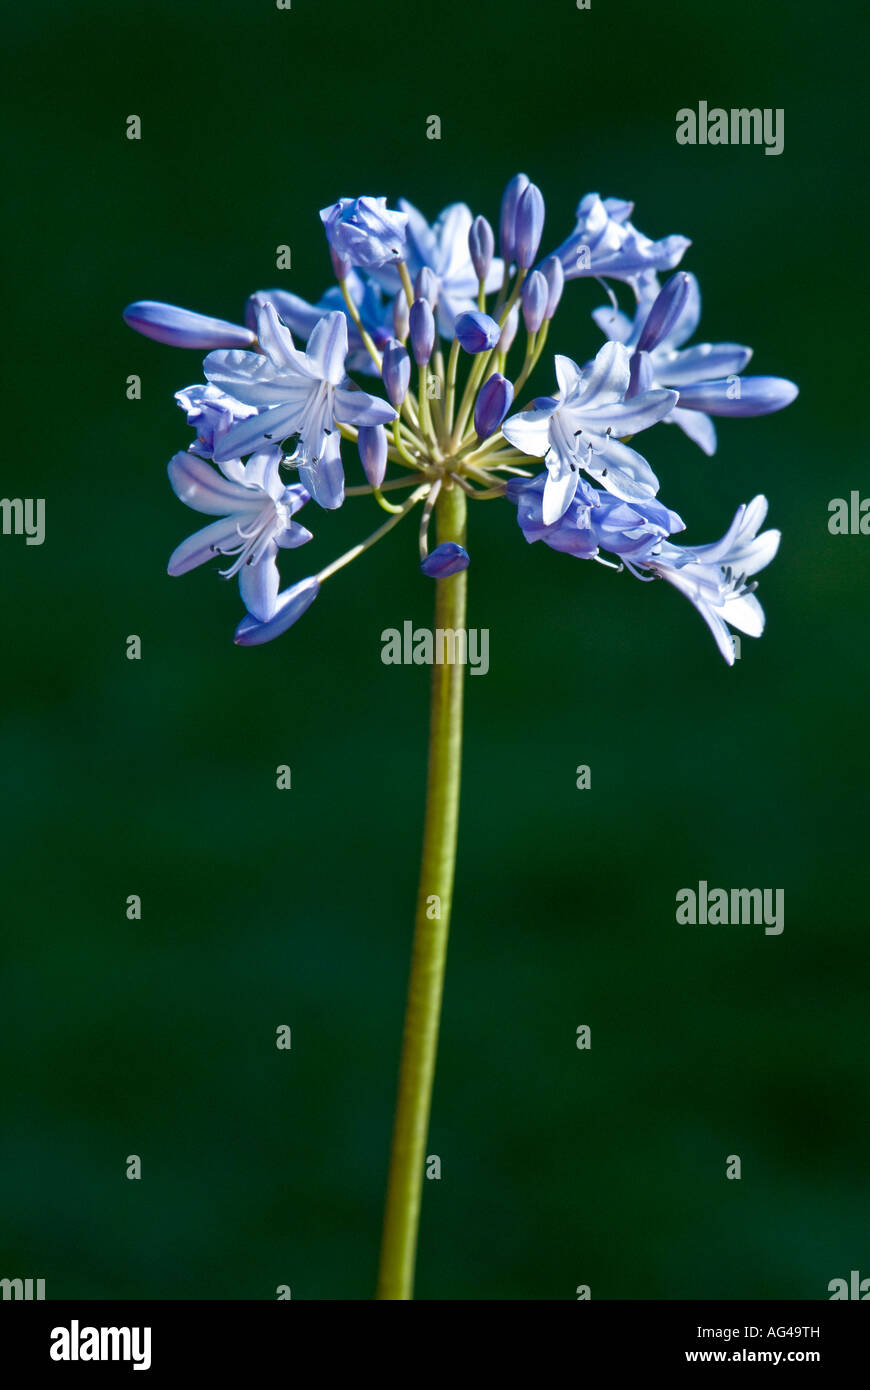 The Agapanthus the African Lily plant - Stock Image